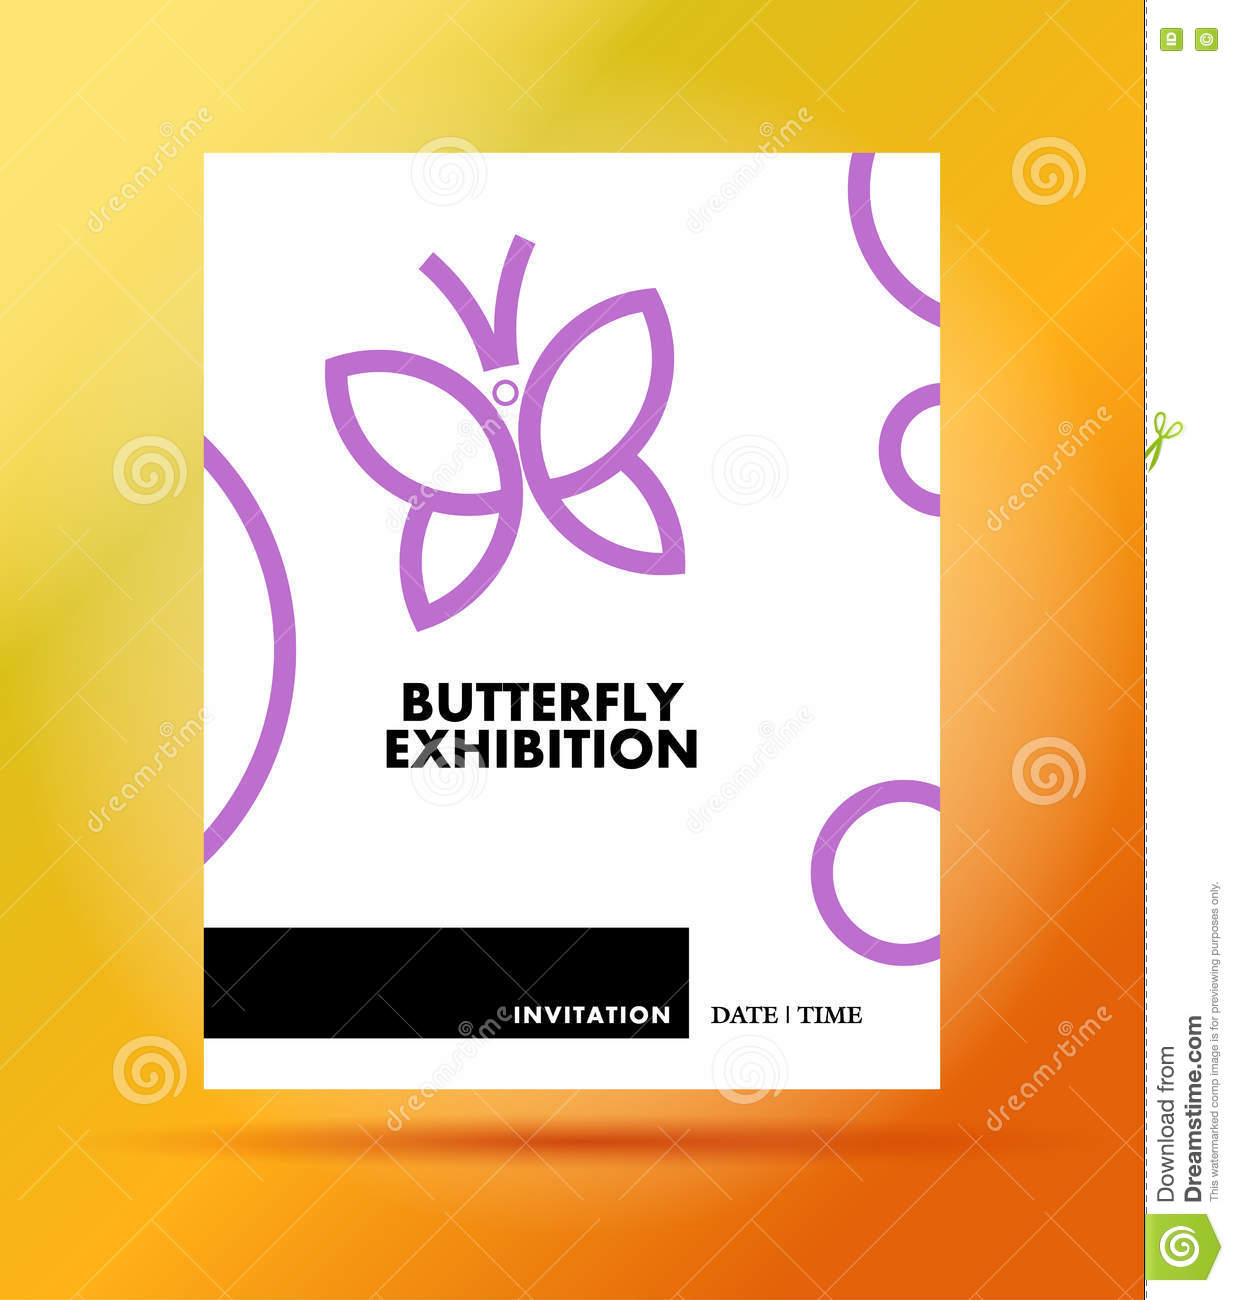 Vector Flat Simple Minimalistic Butterfly Exhibition Invitation